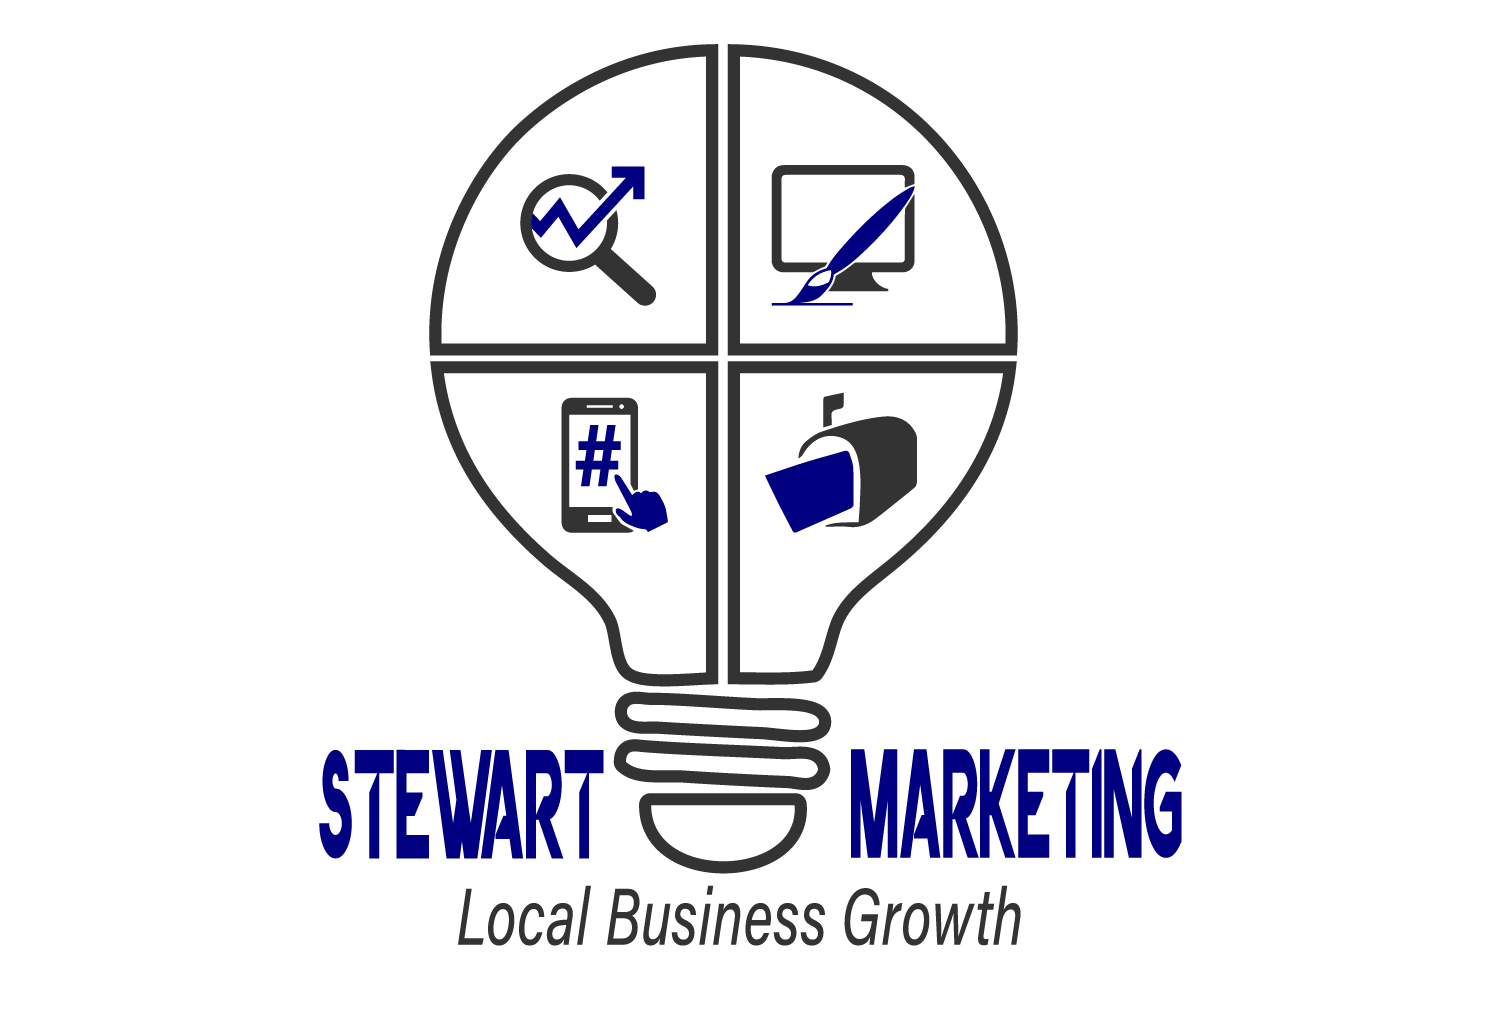 Stewart Marketing